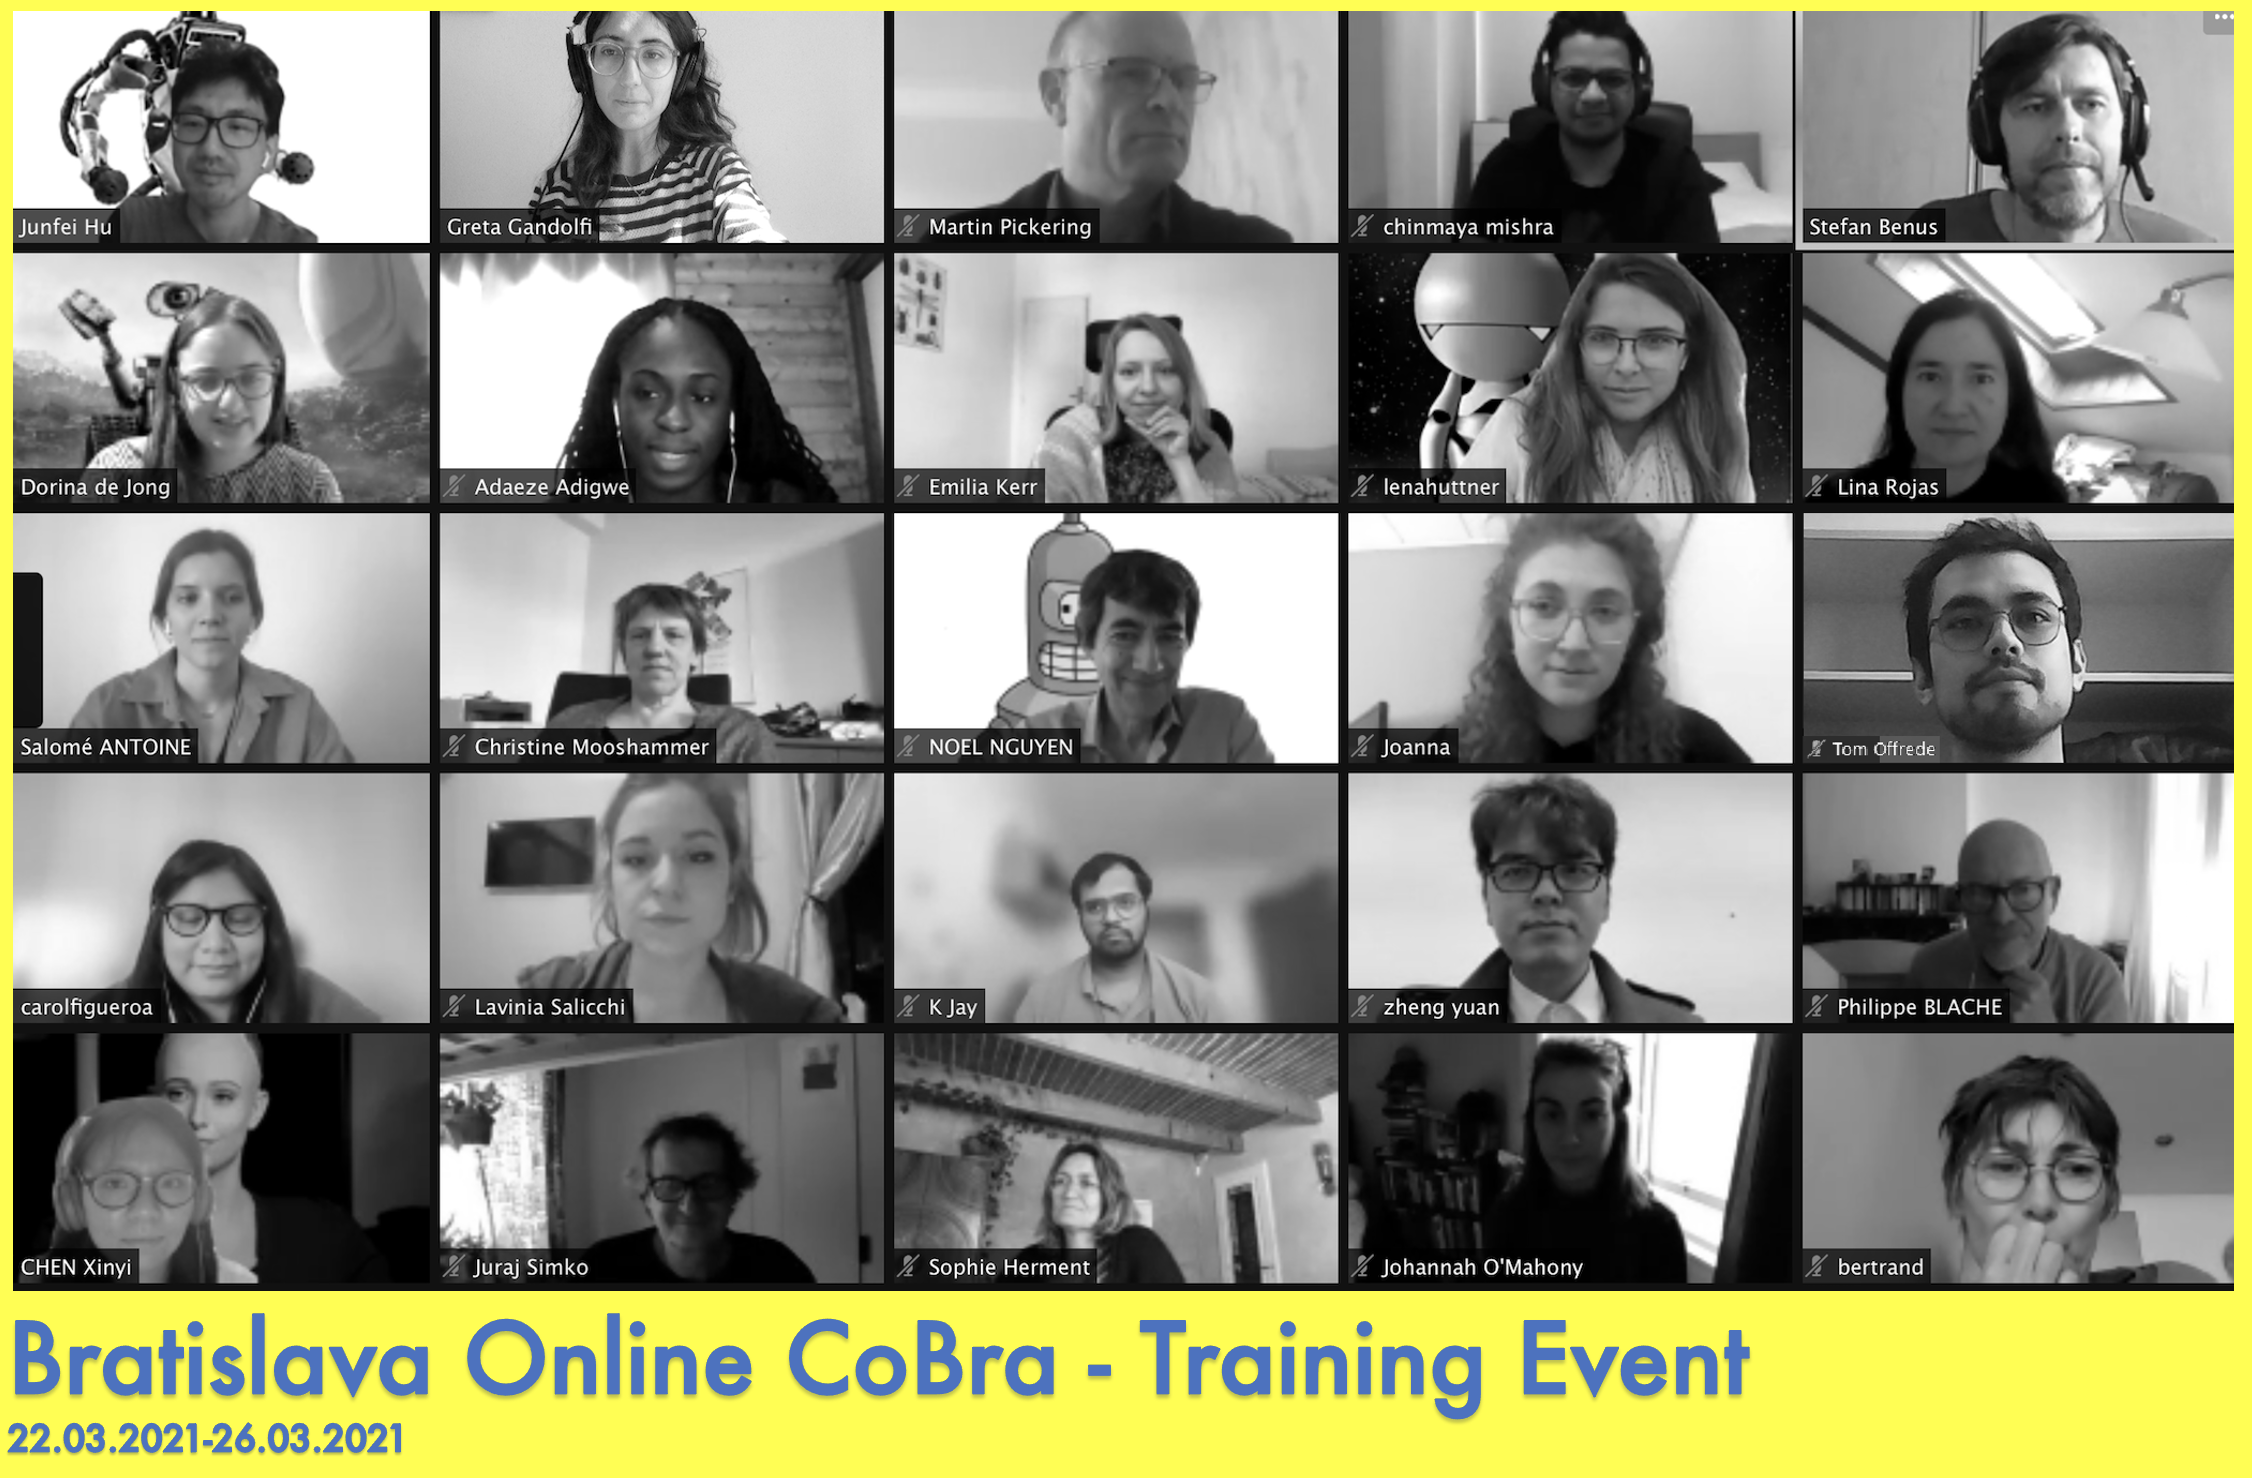 Zoom Screen of Bratislava Online Event participants.